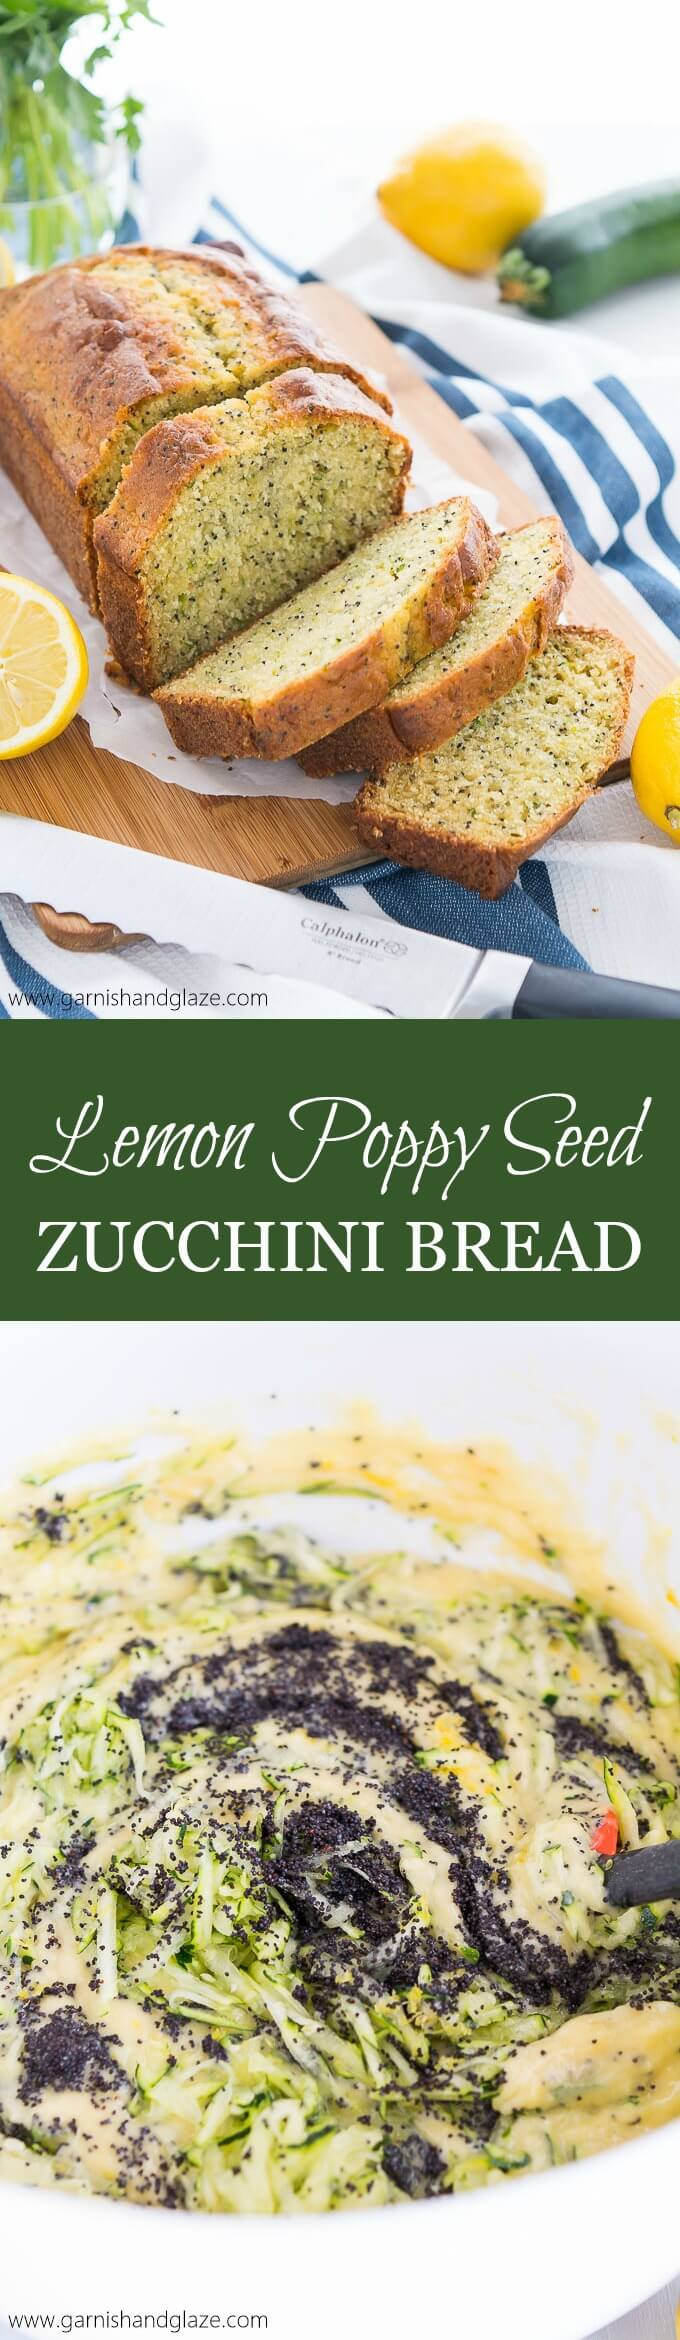 Enjoy your zucchini in this easy-to-make, sweet, tender Lemon Poppy Seed Zucchini Bread.